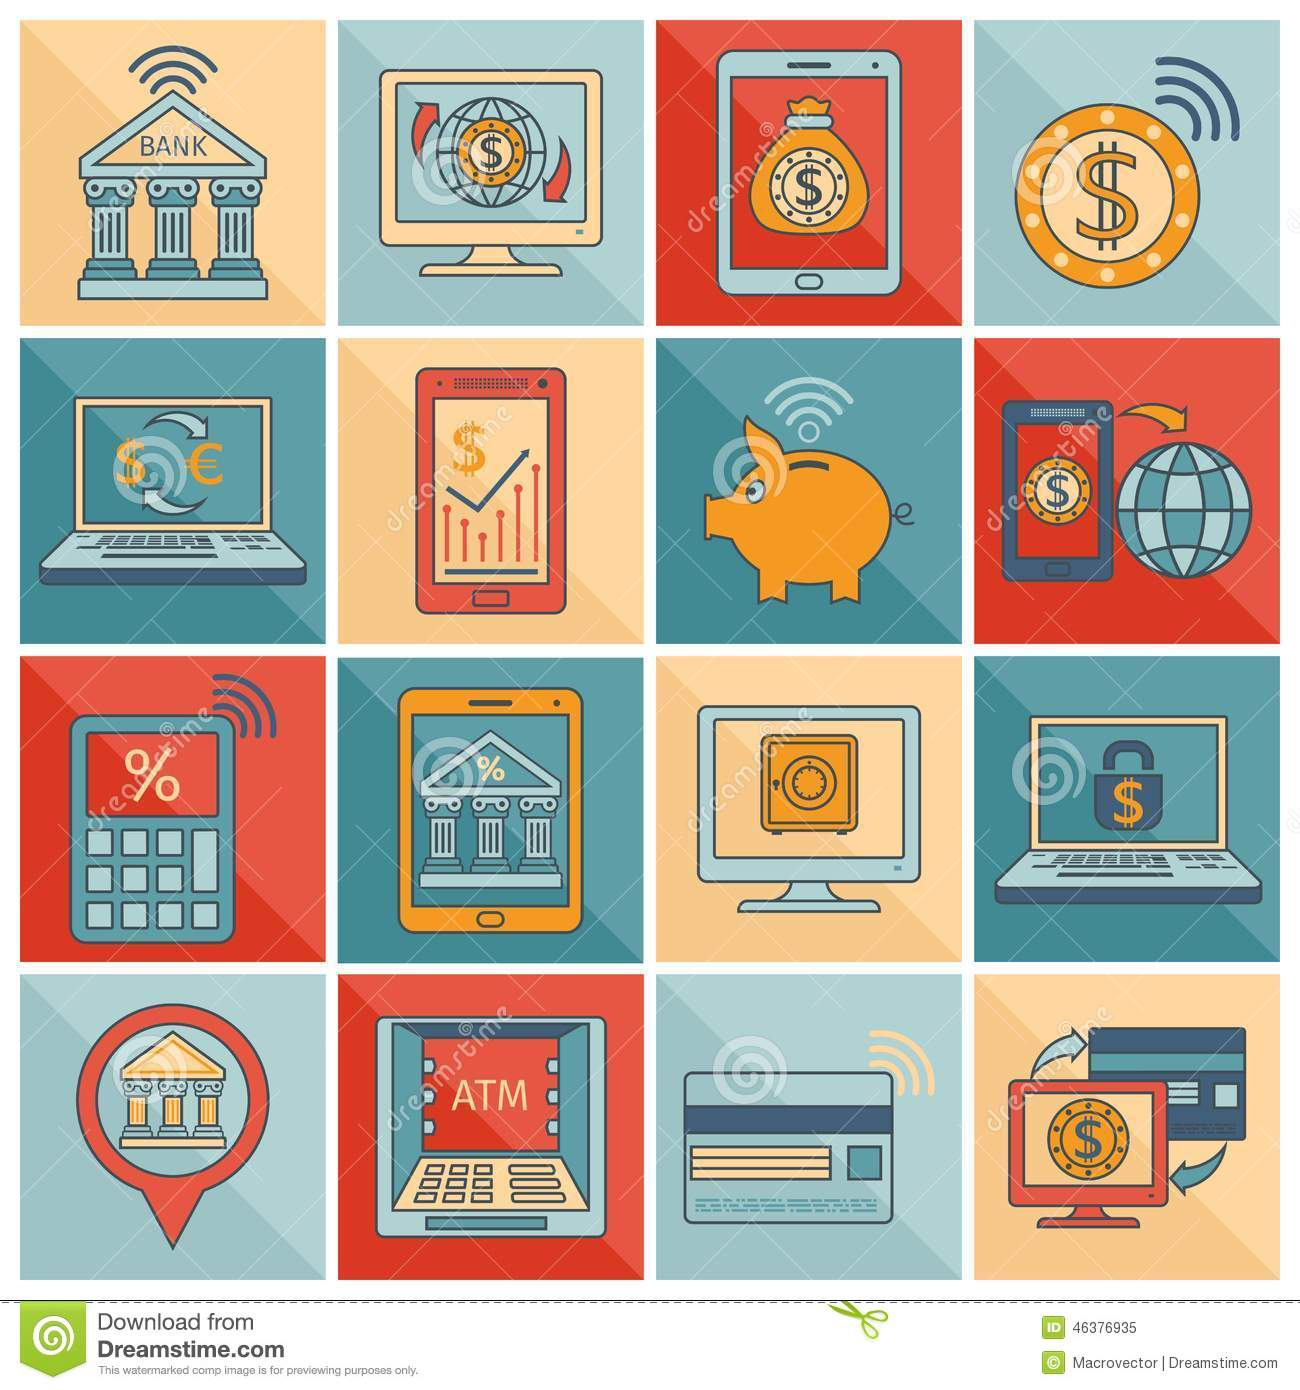 line icons set with digital signature online finance services digital ...: http://dreamstime.com/stock-illustration-mobile-banking-icons-flat-line-set-digital-signature-online-finance-services-digital-transfers-isolated-vector-illustration-image46376935